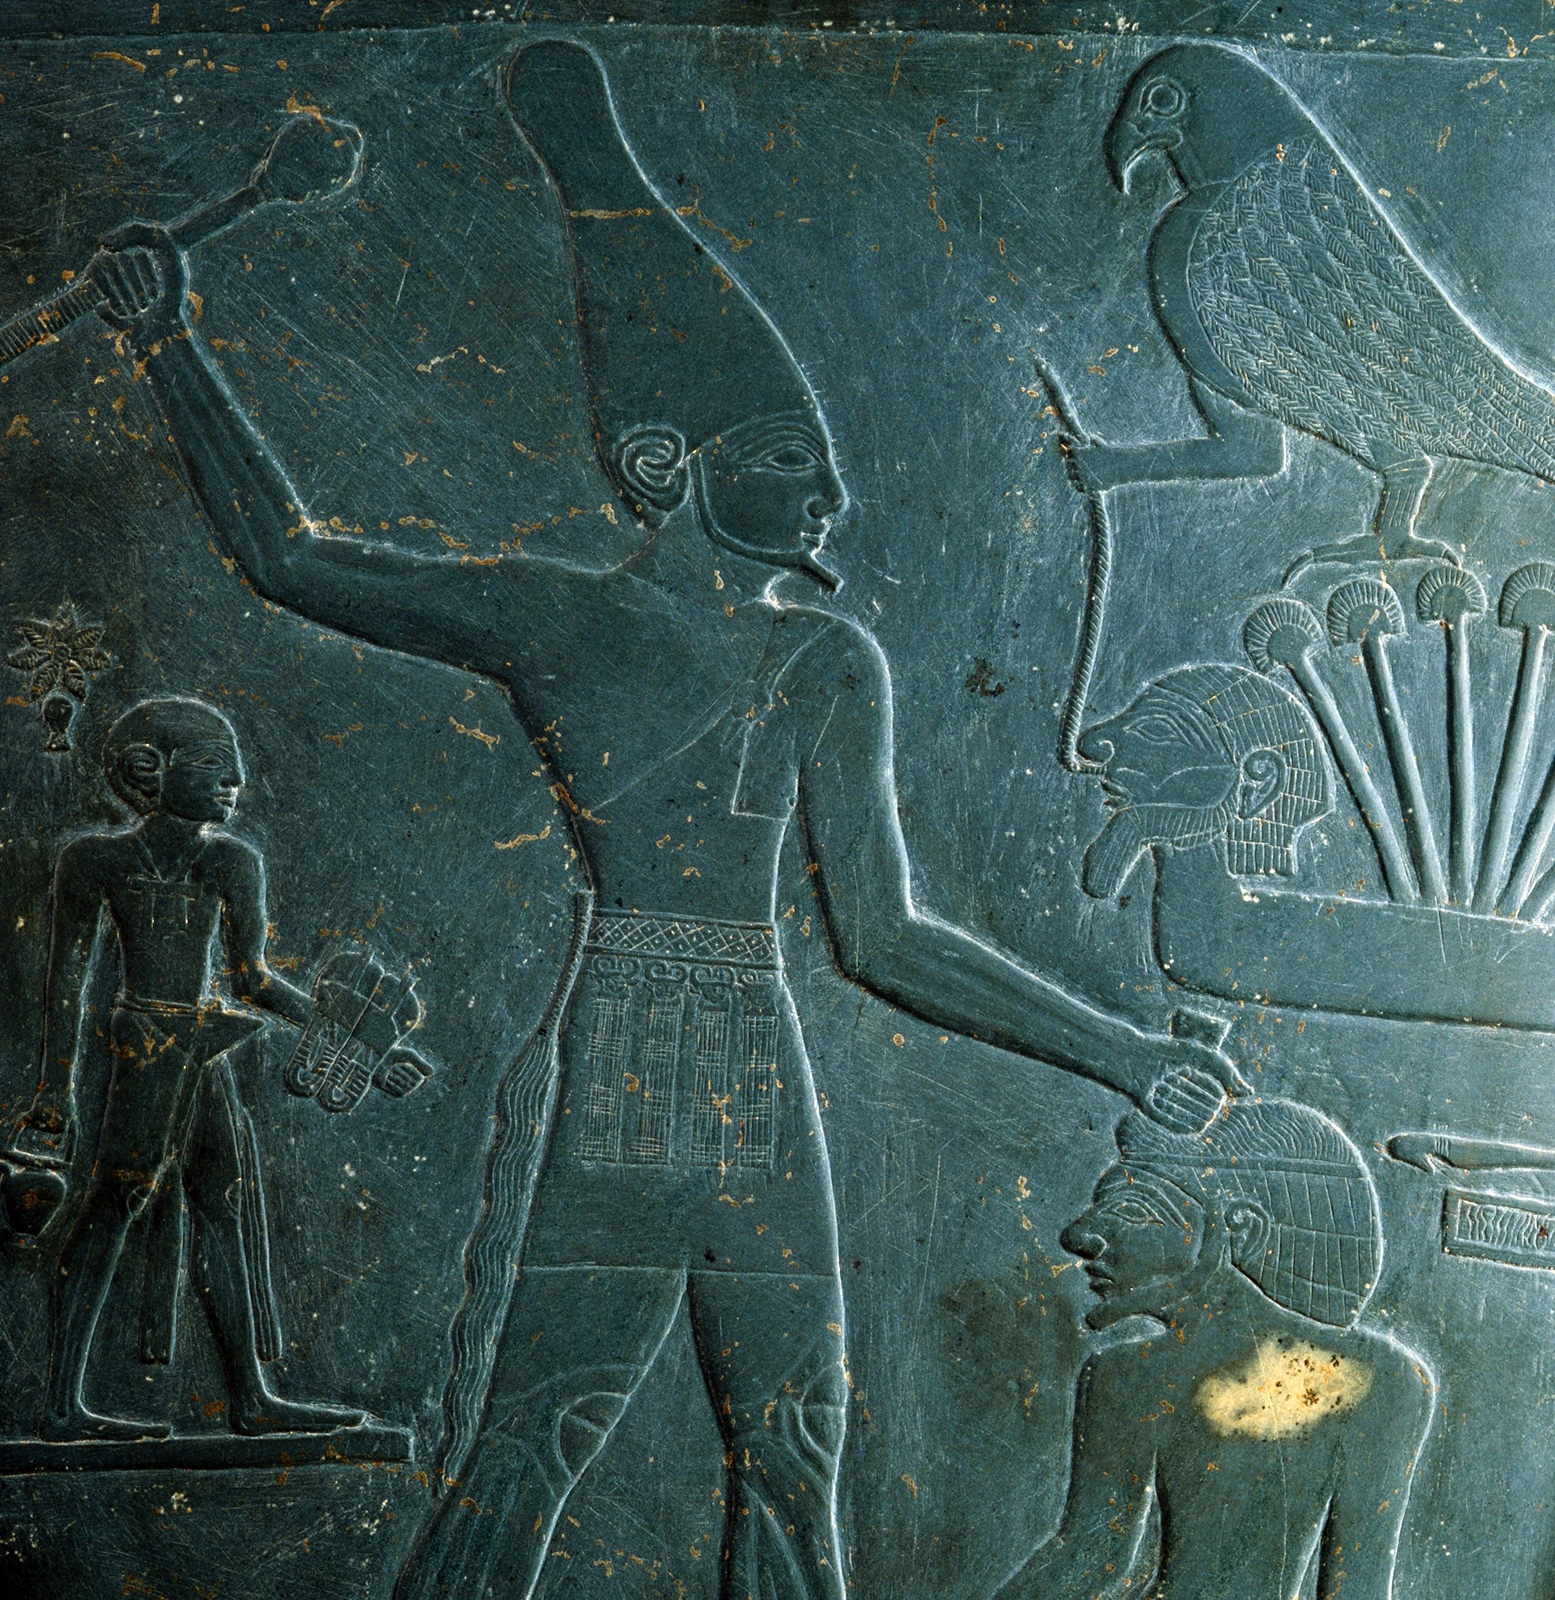 the importance of king narmers palette to egypt The narmer palette, also known as the great hierakonpolis palette or the palette of narmer, is a significant egyptian archeological find, dating from about the 31st century bc, containing some of the earliest hieroglyphic inscriptions ever found.